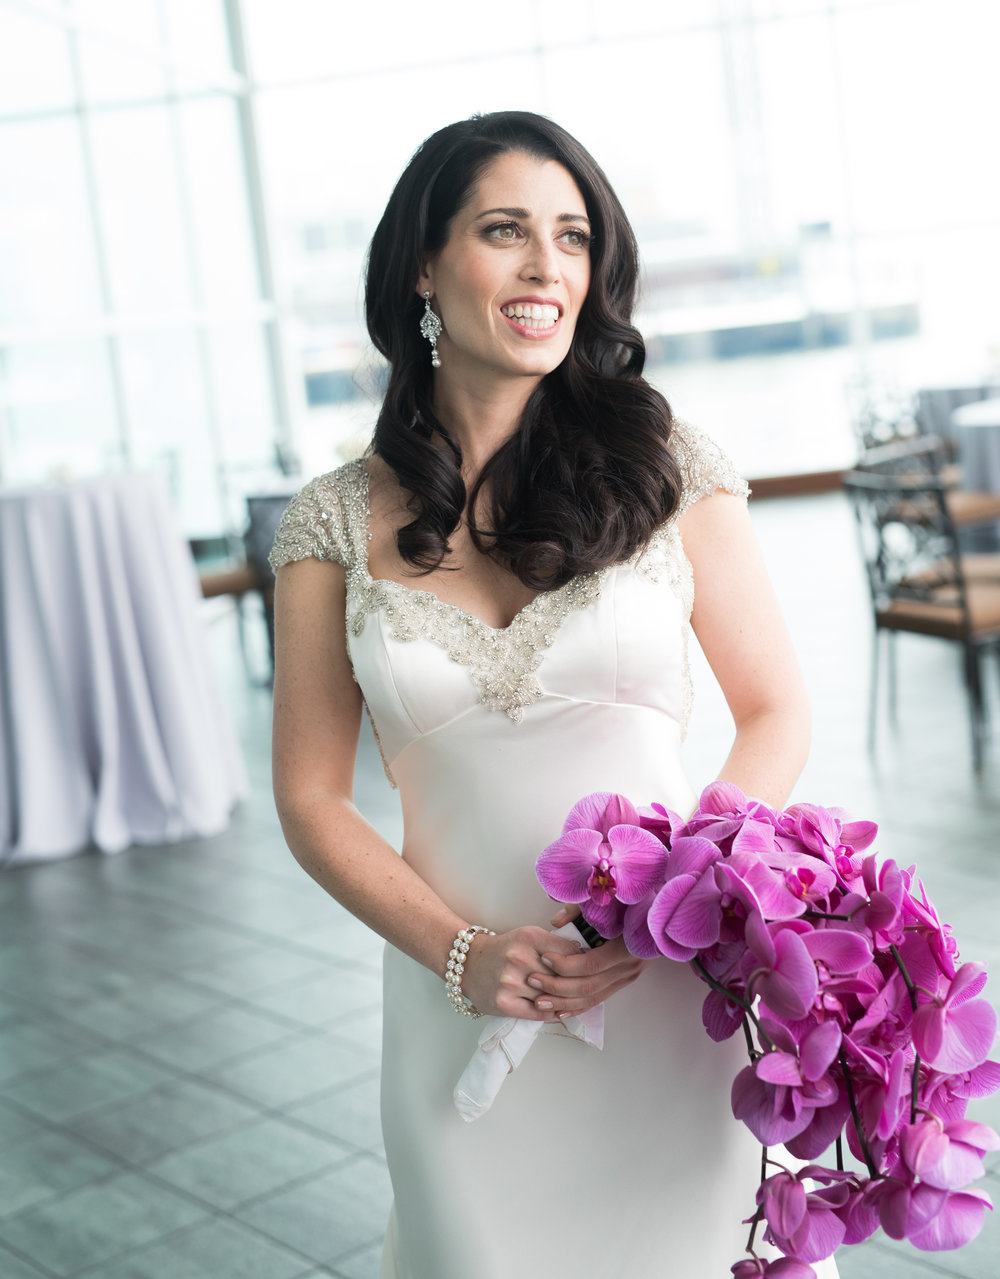 Photographer: Patrick McMullan  Prep location: Chatwal Hotel  Ceremony location: Lighthouse at Chelsea Piers  Hair by Chelsie Rodden for SB Beaut